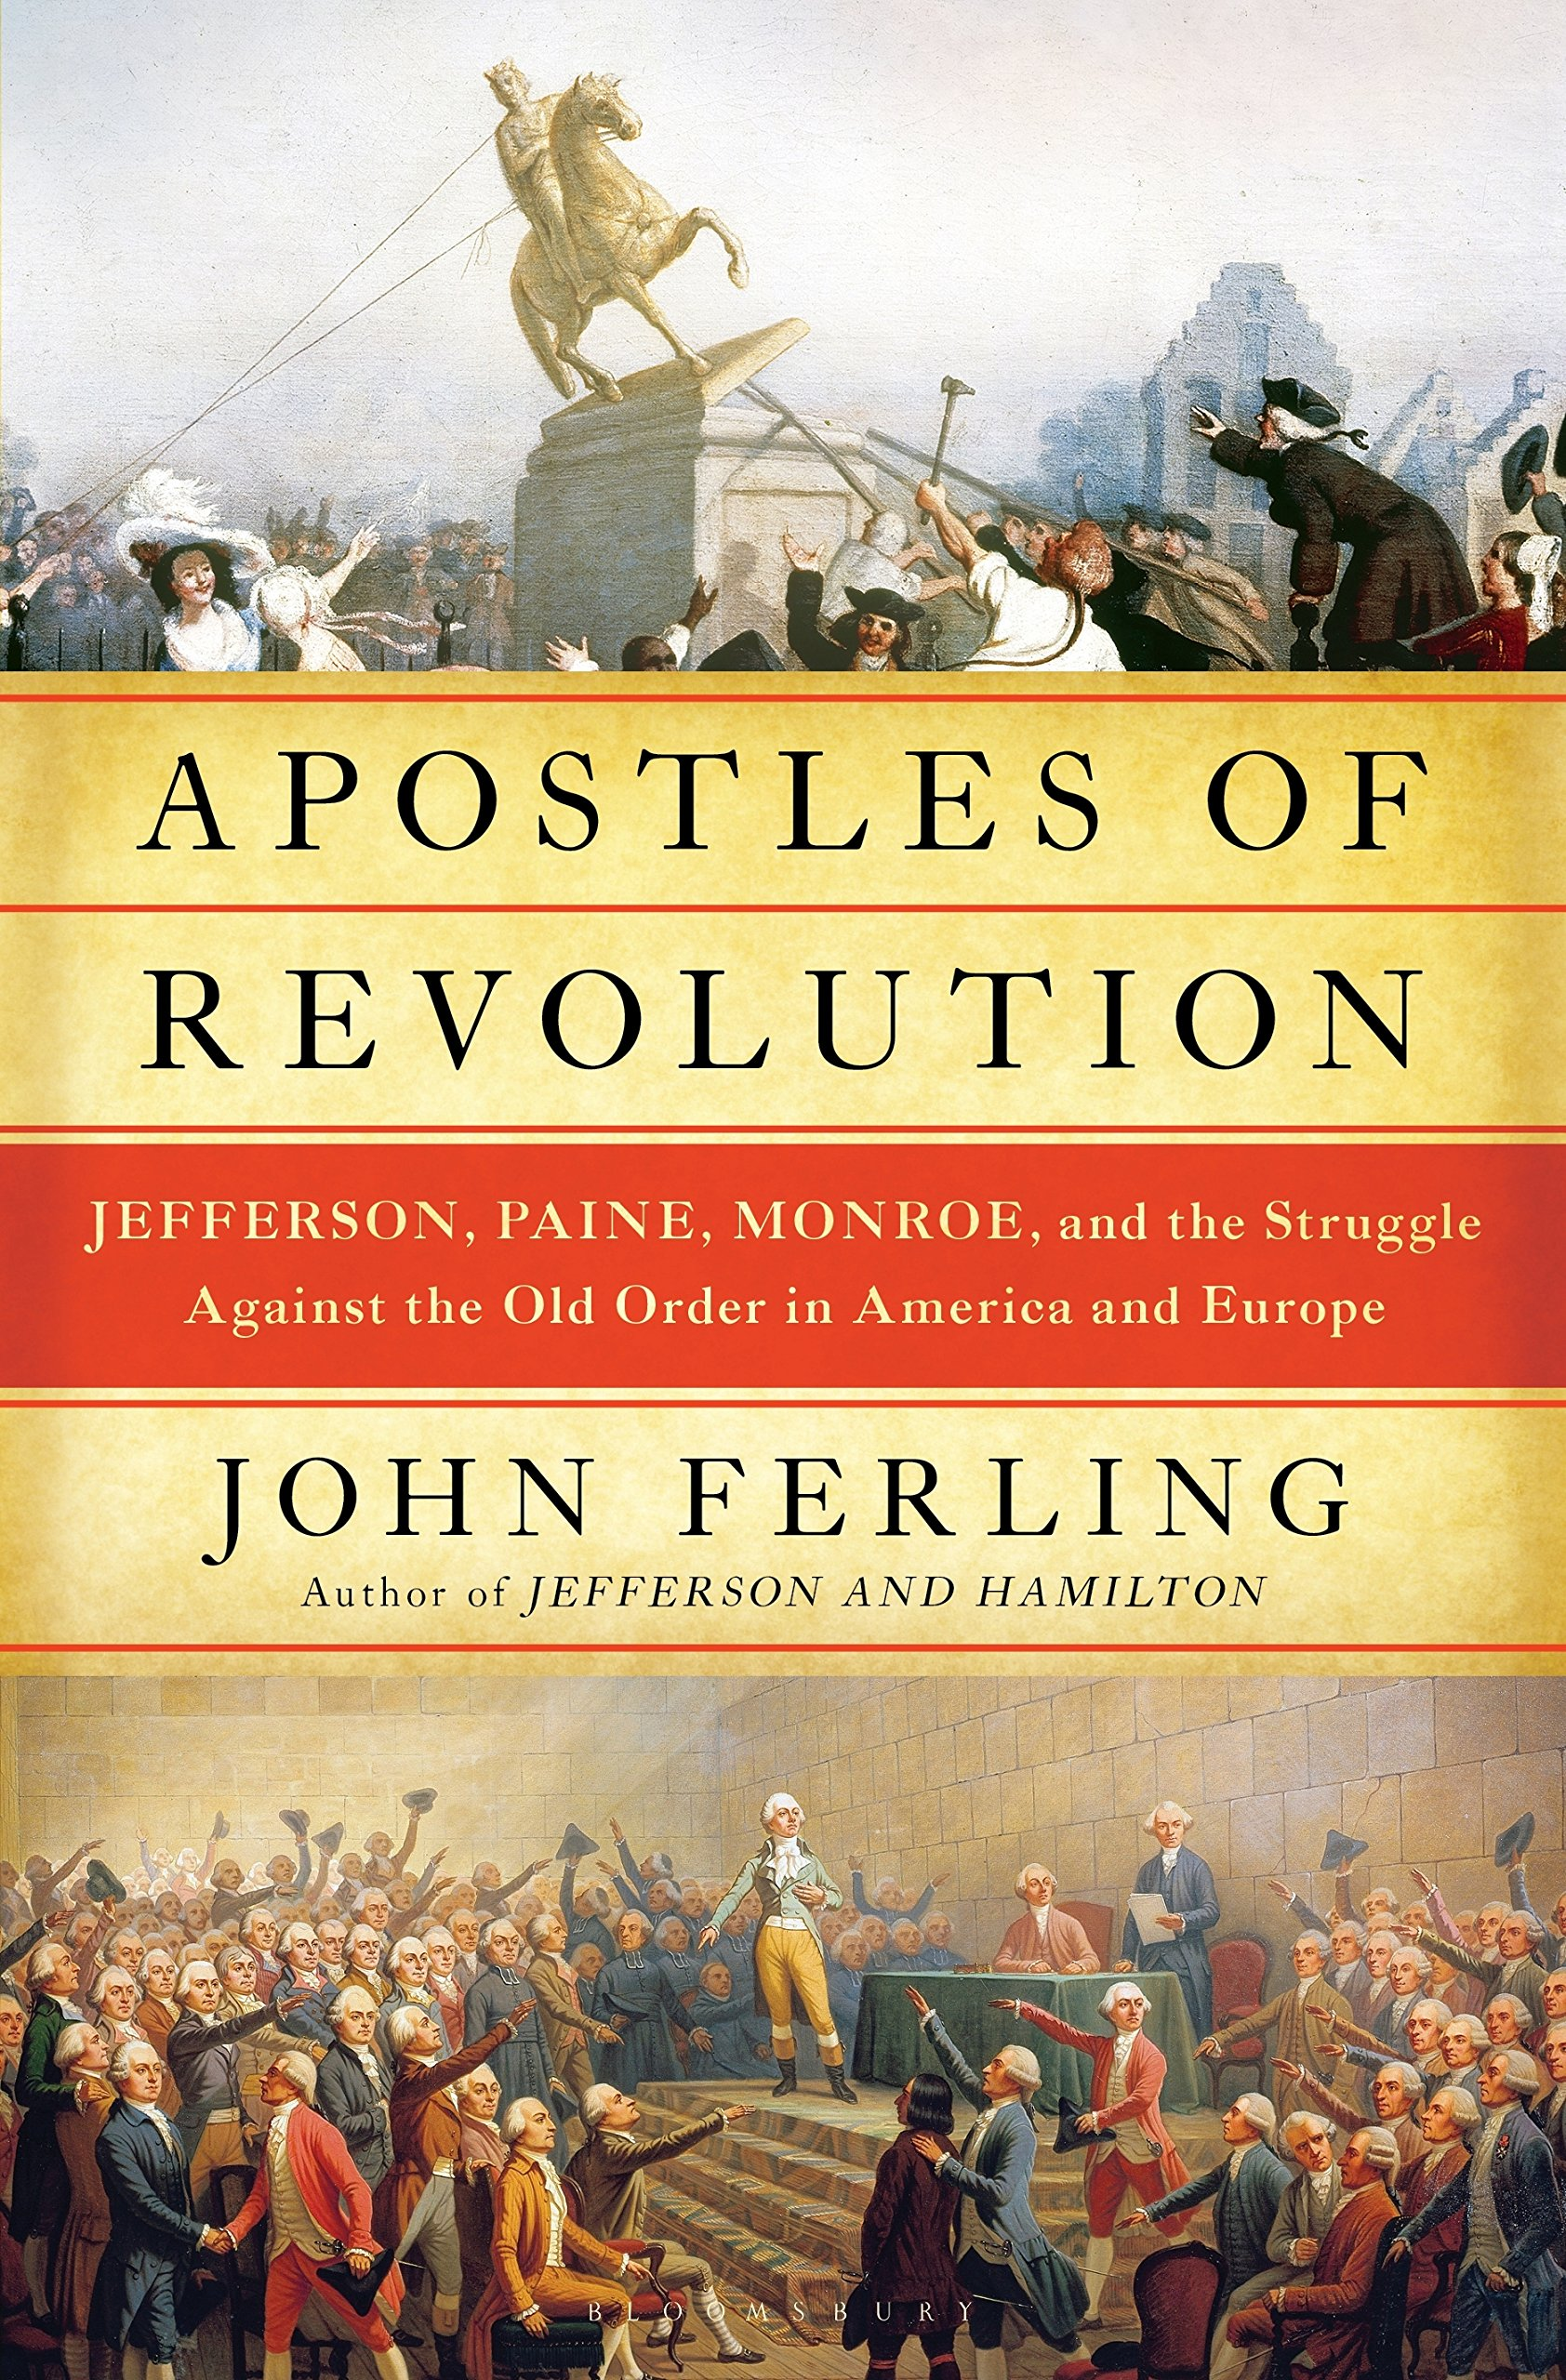 Image result for jefferson monroe paine book